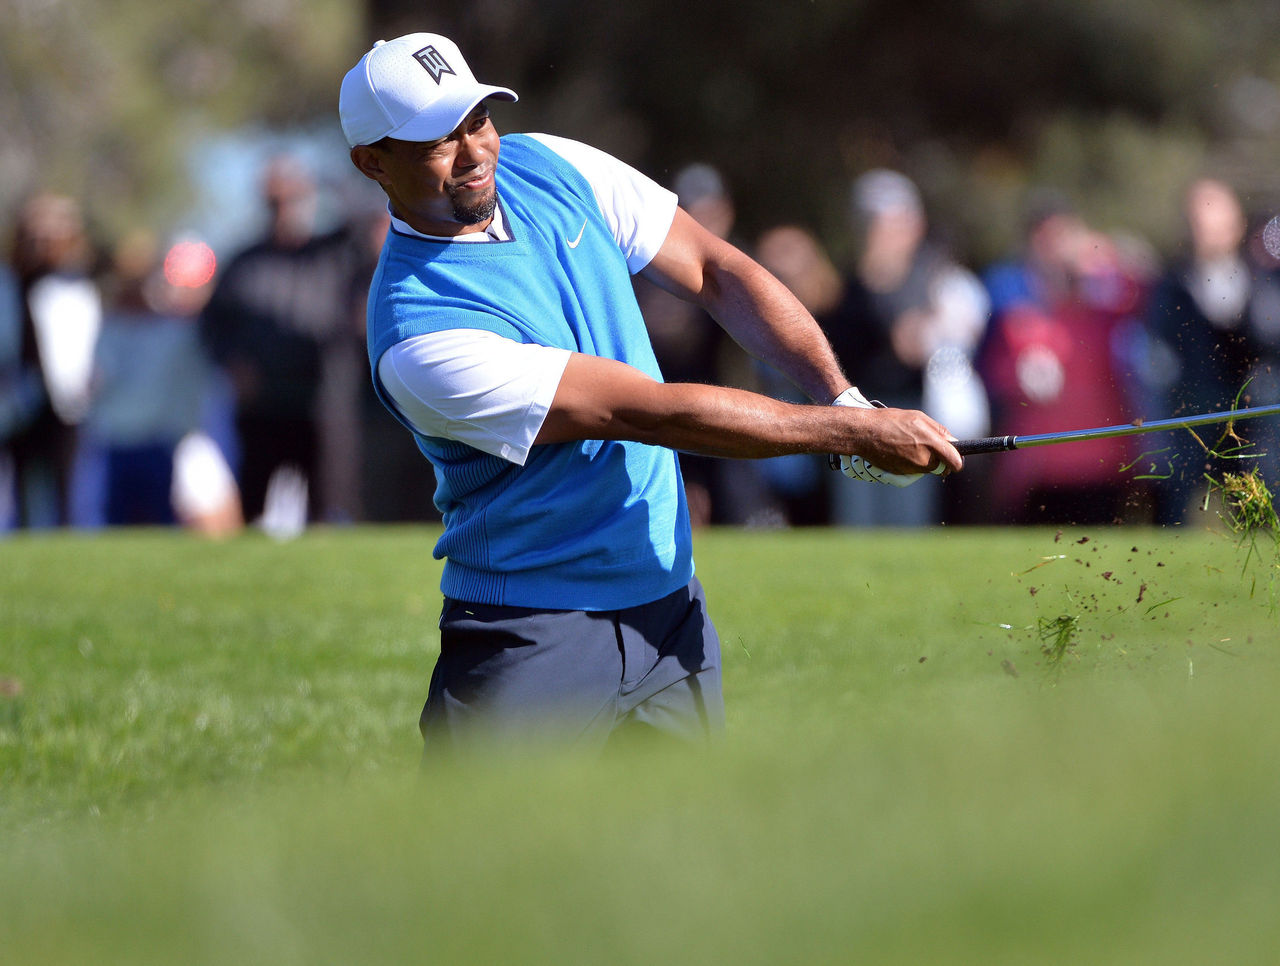 Cropped 2017 01 26t224603z 1051537385 nocid rtrmadp 3 pga farmers insurance open first round